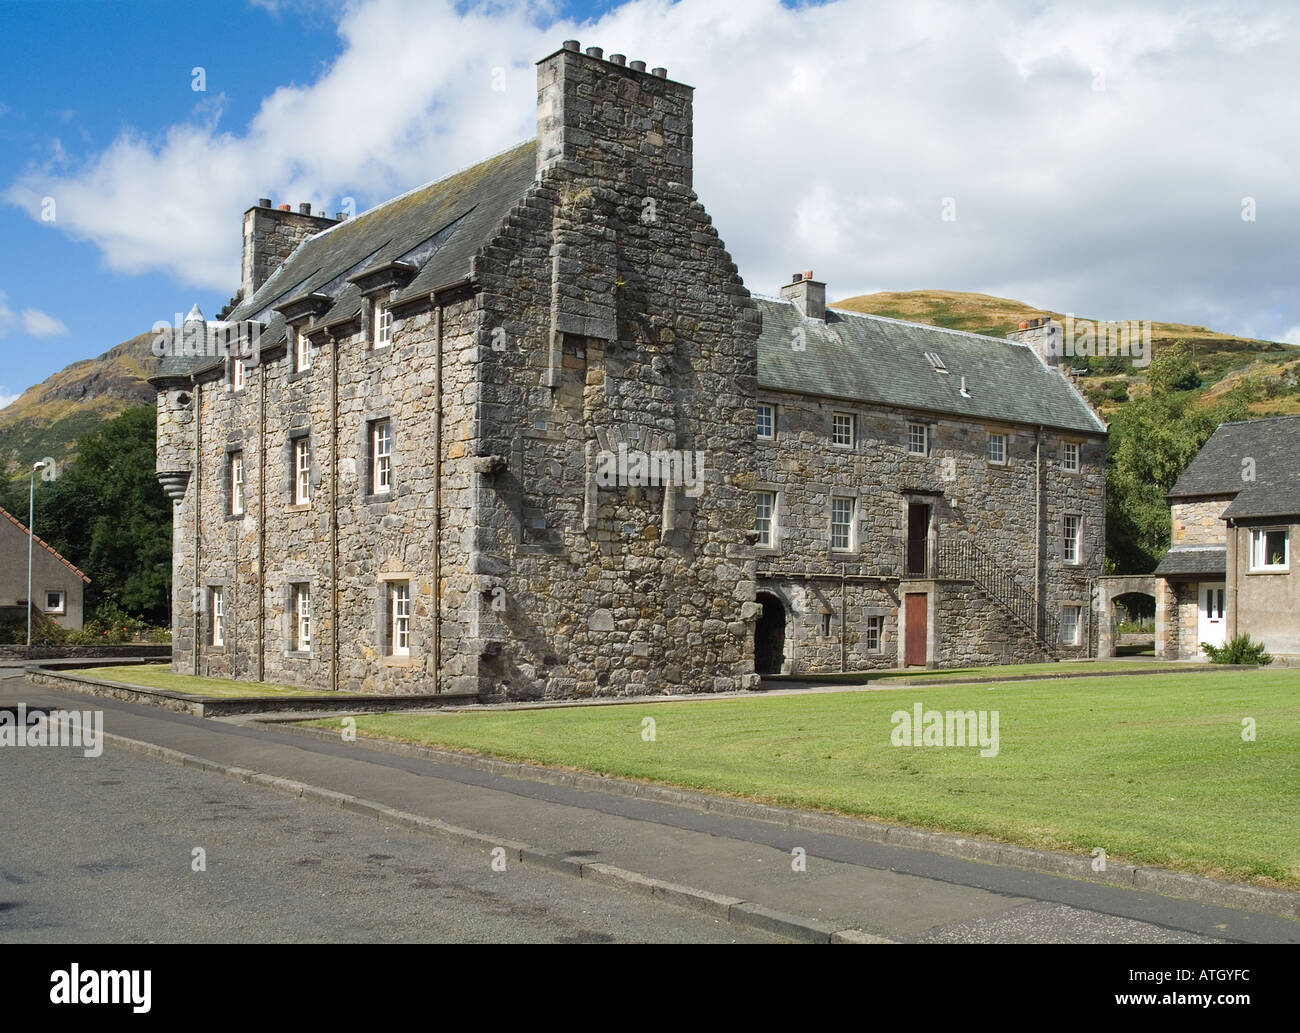 Awesome Dh Menstrie Castle MENSTRIE CLACKMANNAN 16th Century L Plan Tower House    Stock Image